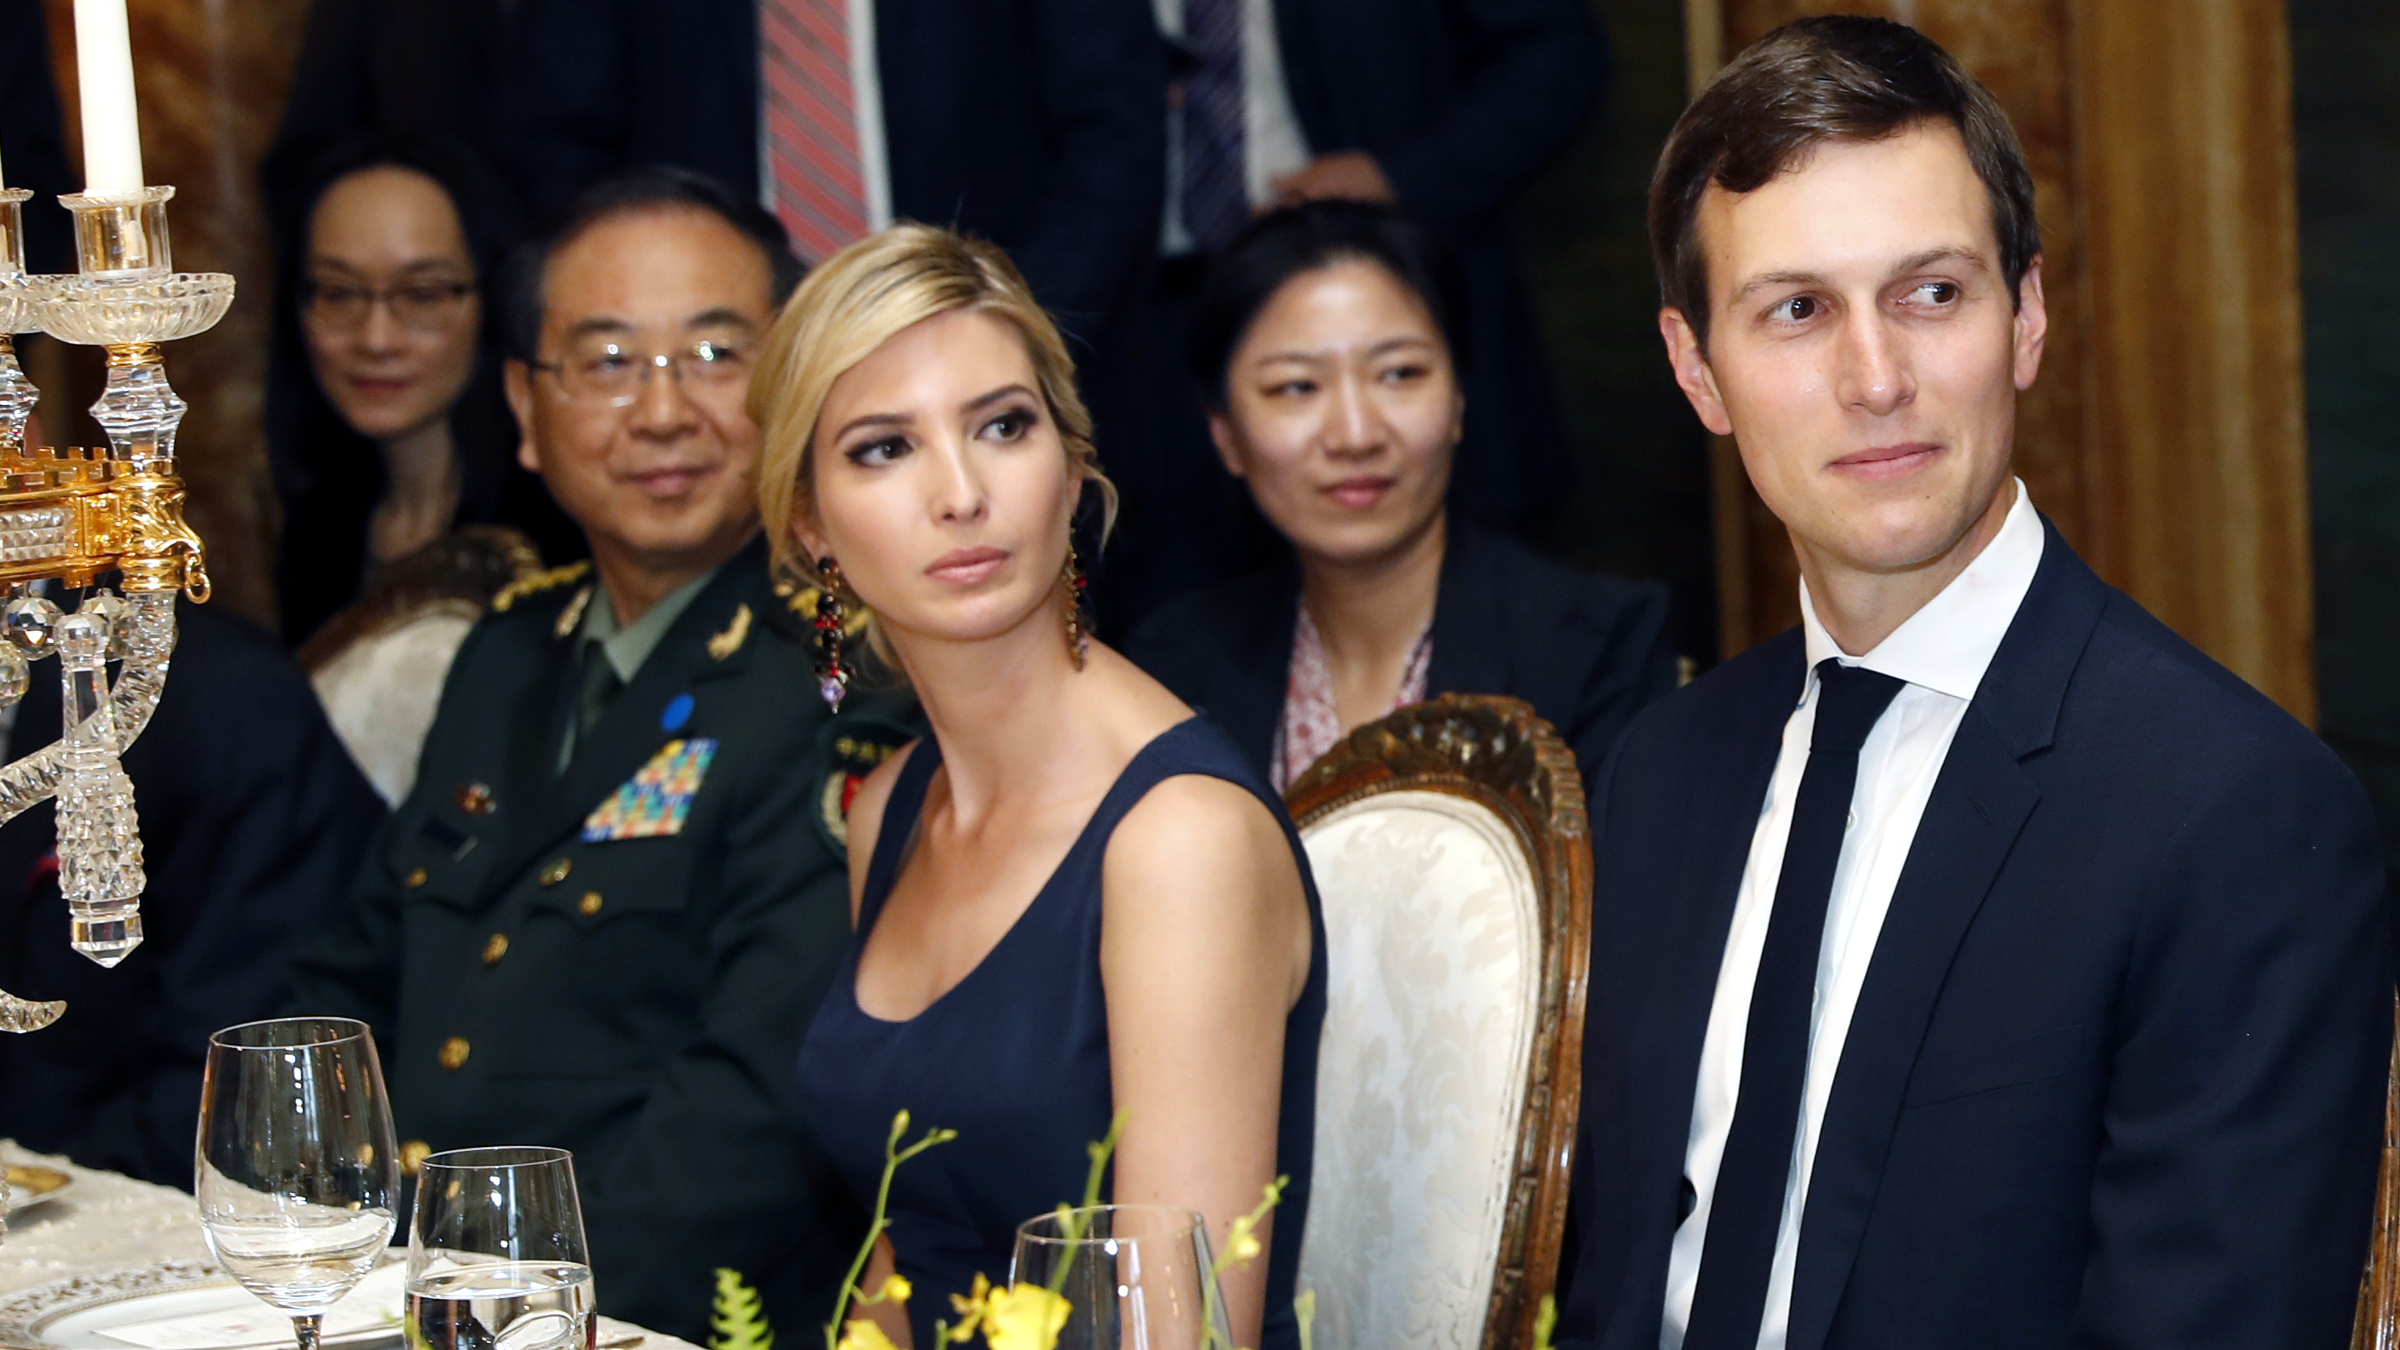 Ivanka Trump, second from right, the daughter and assistant to President Donald Trump, is seated with her husband White House senior adviser Jared Kushner, right, during a dinner with President Donald Trump and Chinese President Xi Jinping, at Mar-a-Lago, Thursday, April 6, 2017, in Palm Beach, Fla.